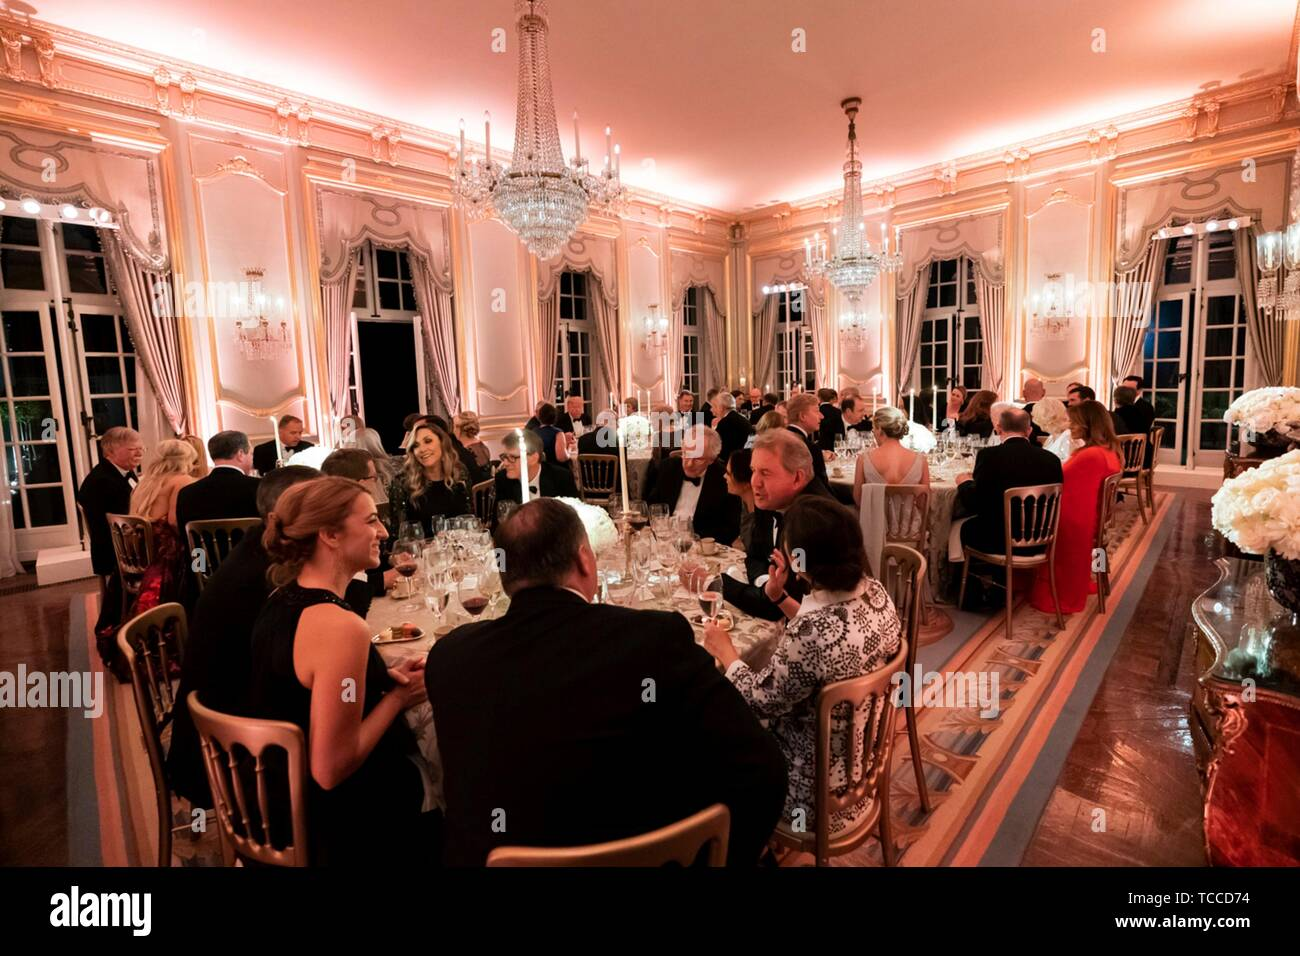 Guests enjoy a gala dinner hosted by U.S President Donald Trump and First Lady Melania Trump at Winfield House June 4, 2019 in London, England. Stock Photo